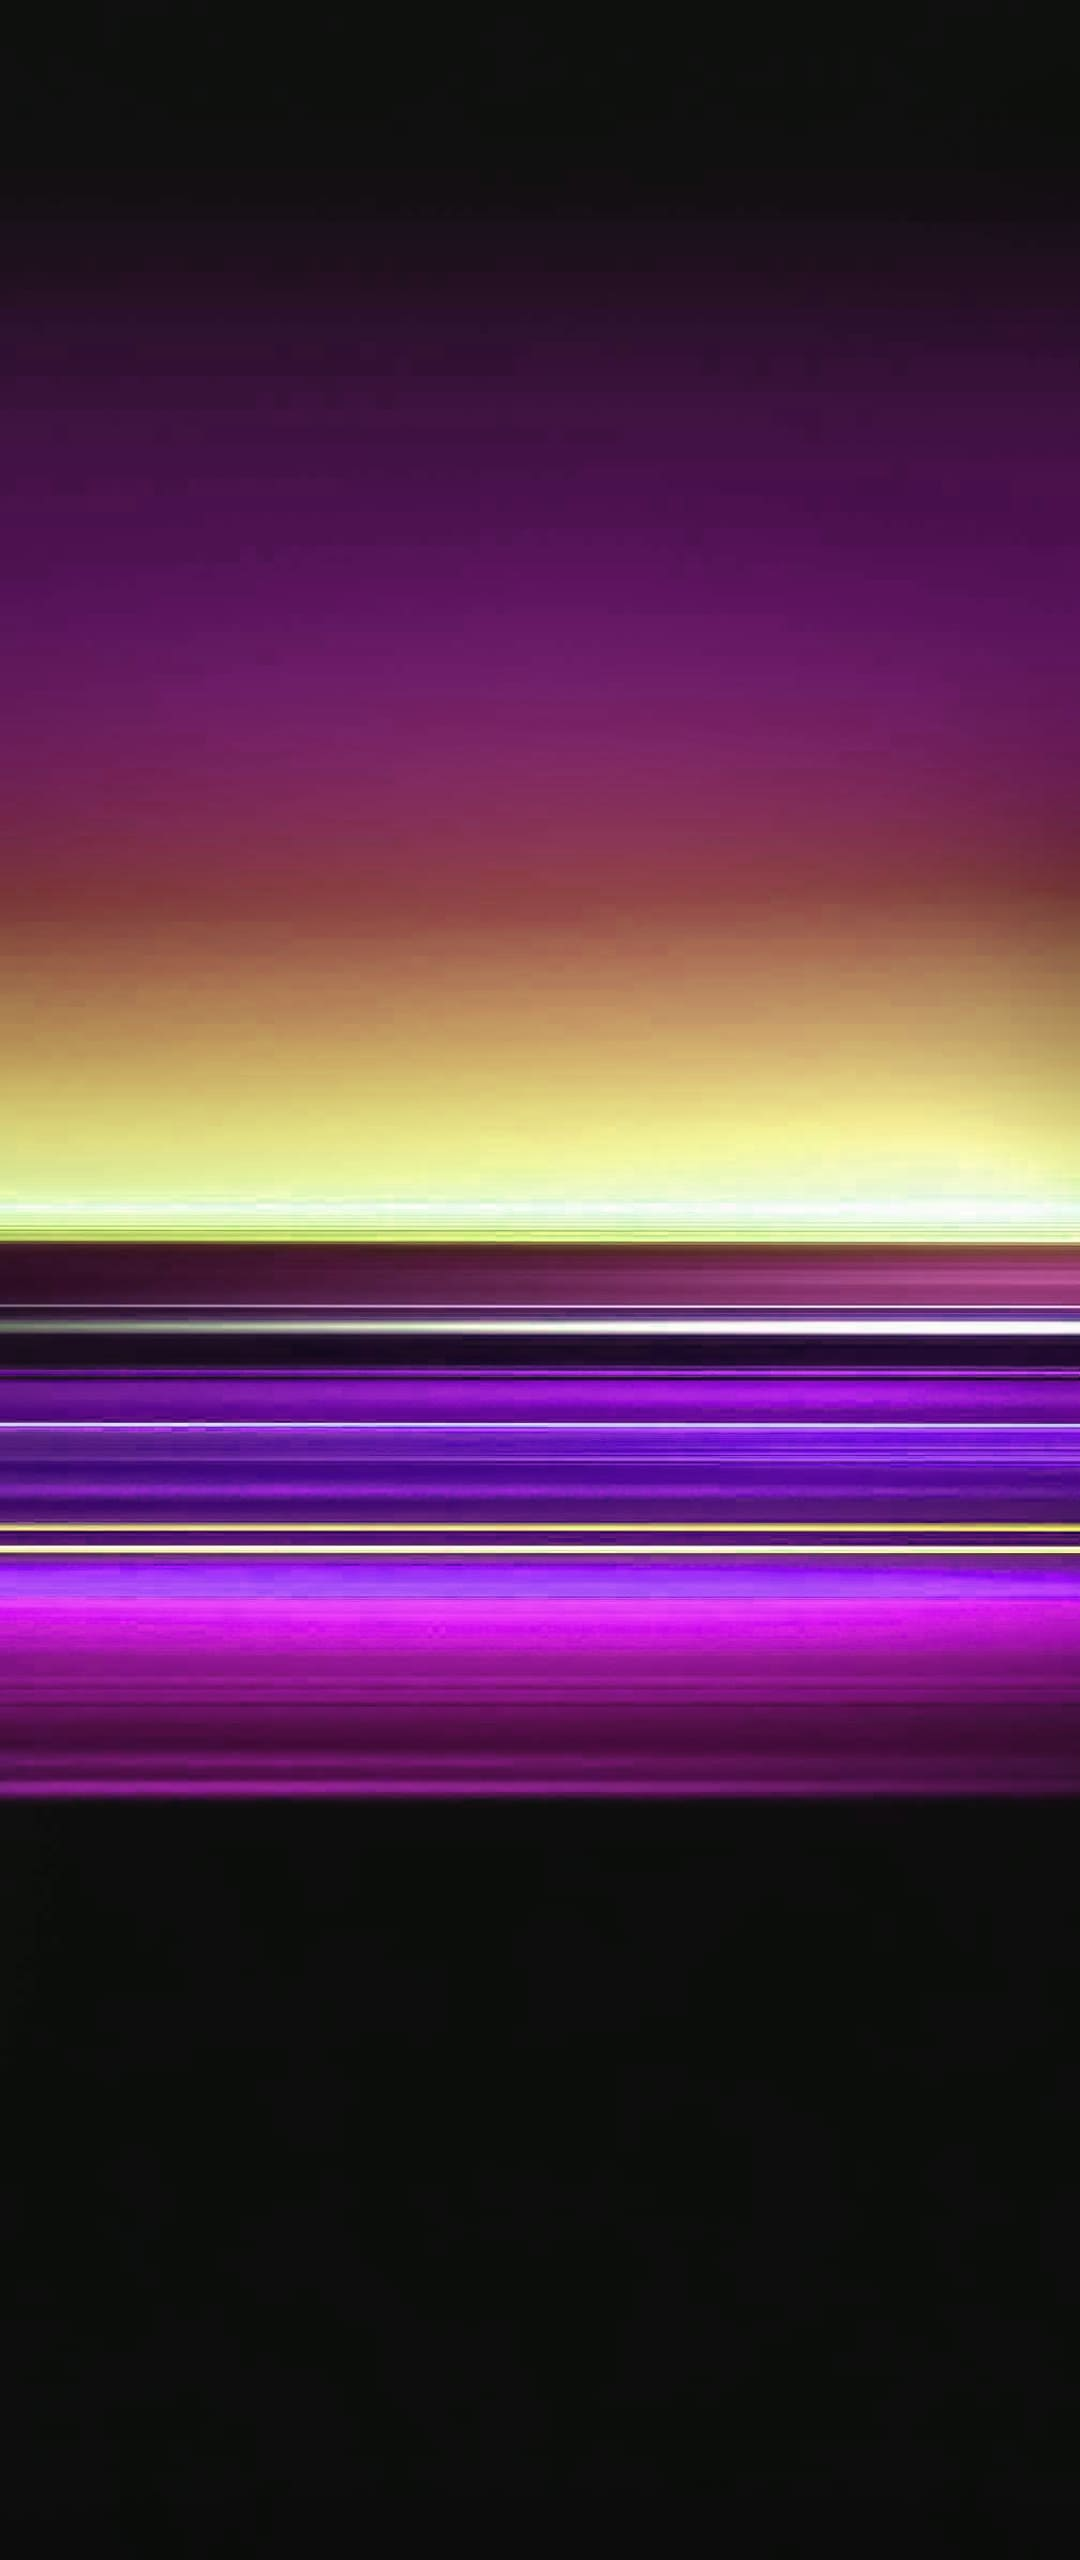 Wallpaper Sony Xperia Posted By Ryan Thompson